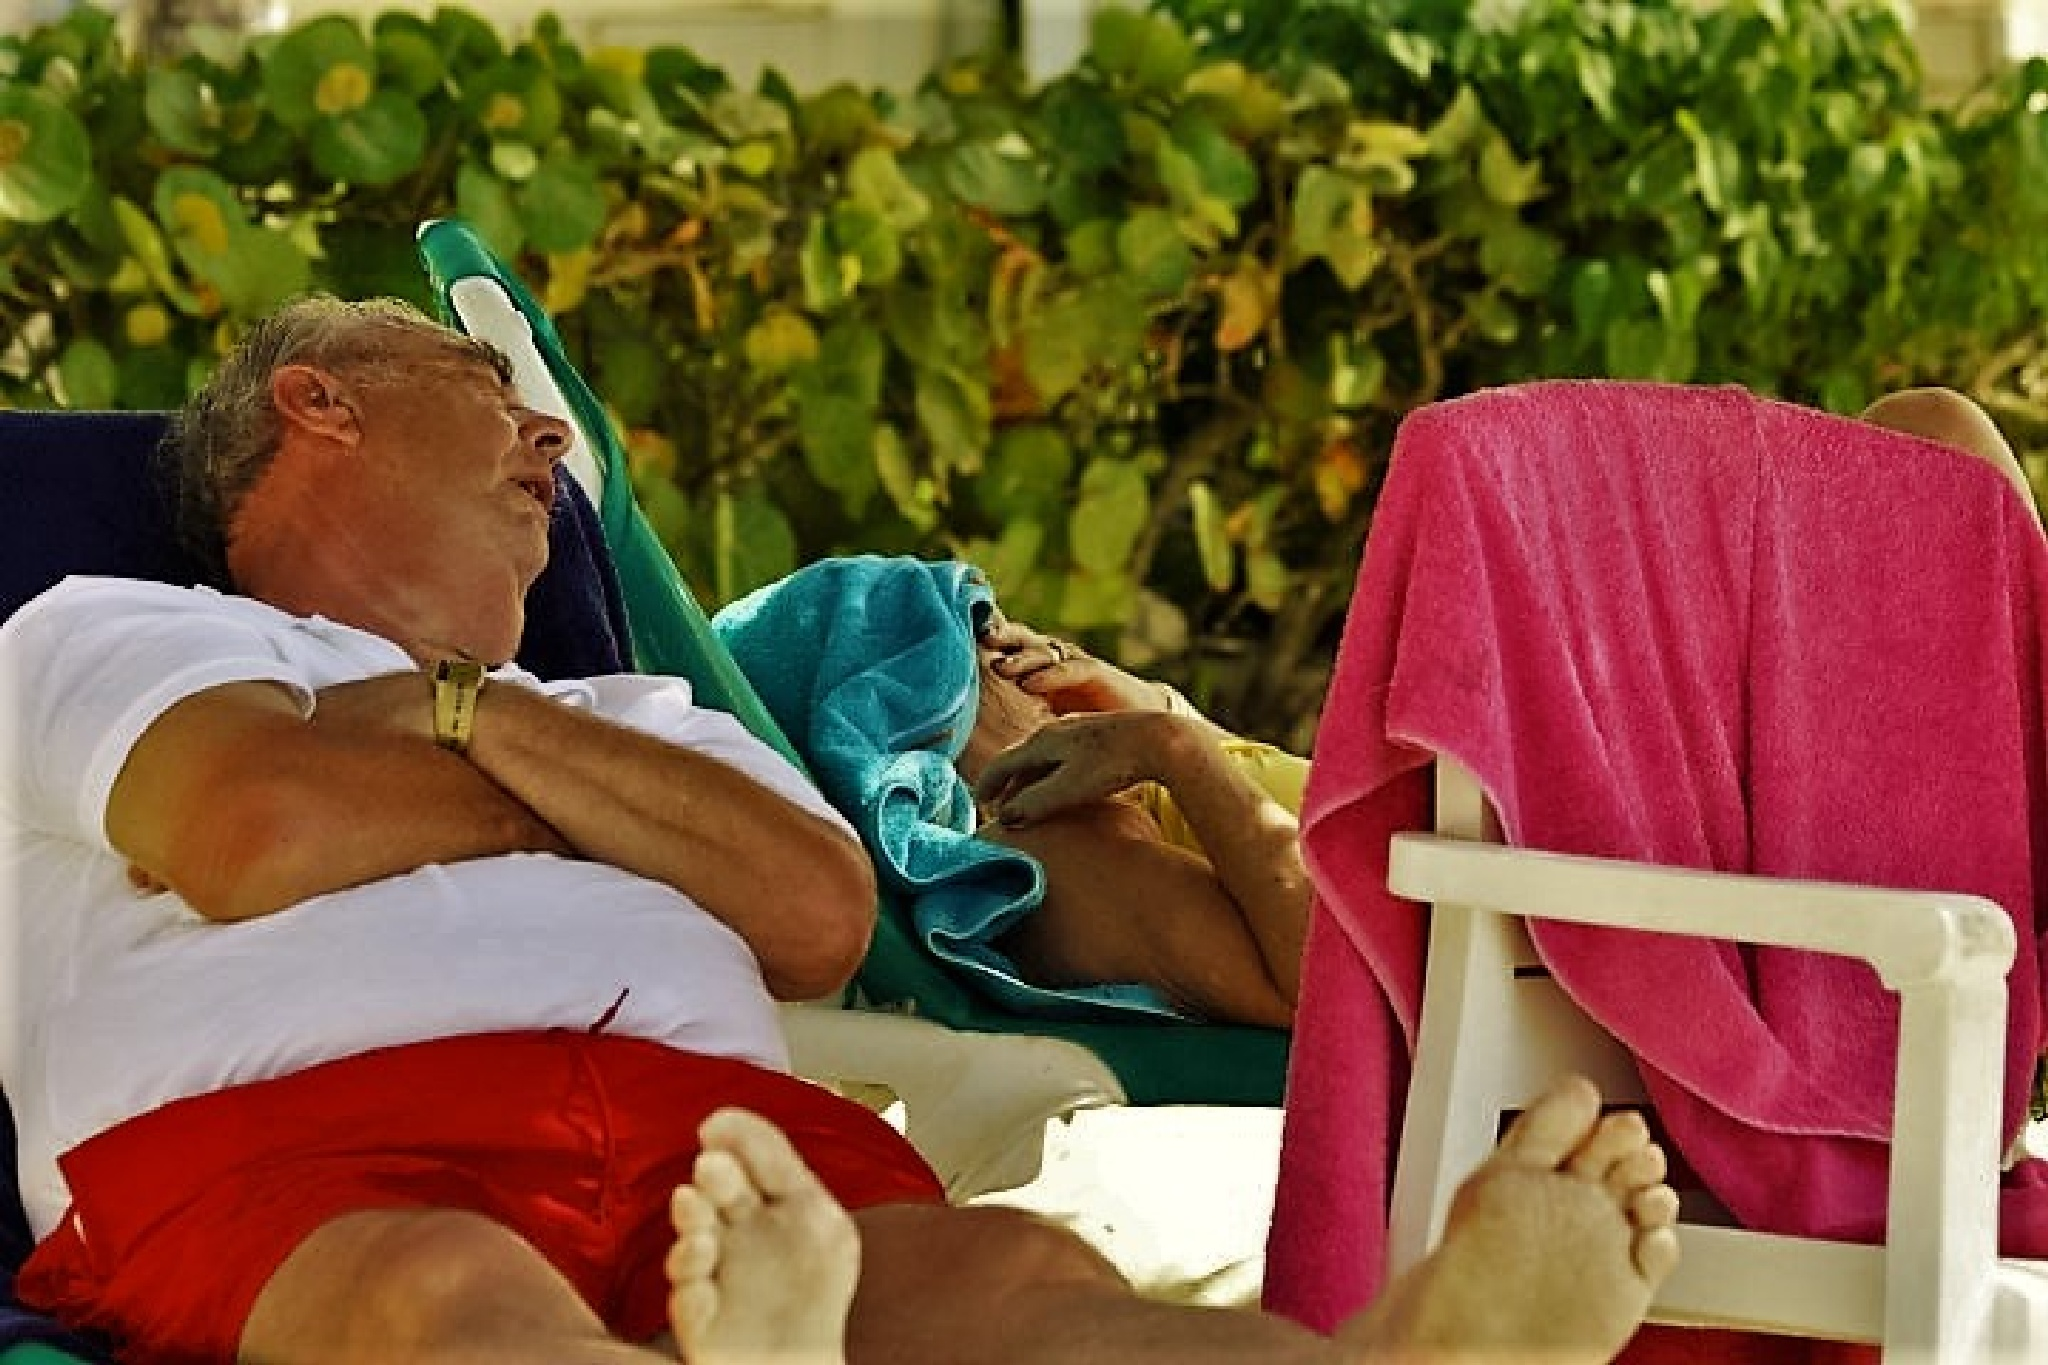 Napping seniors by Whymilikethis